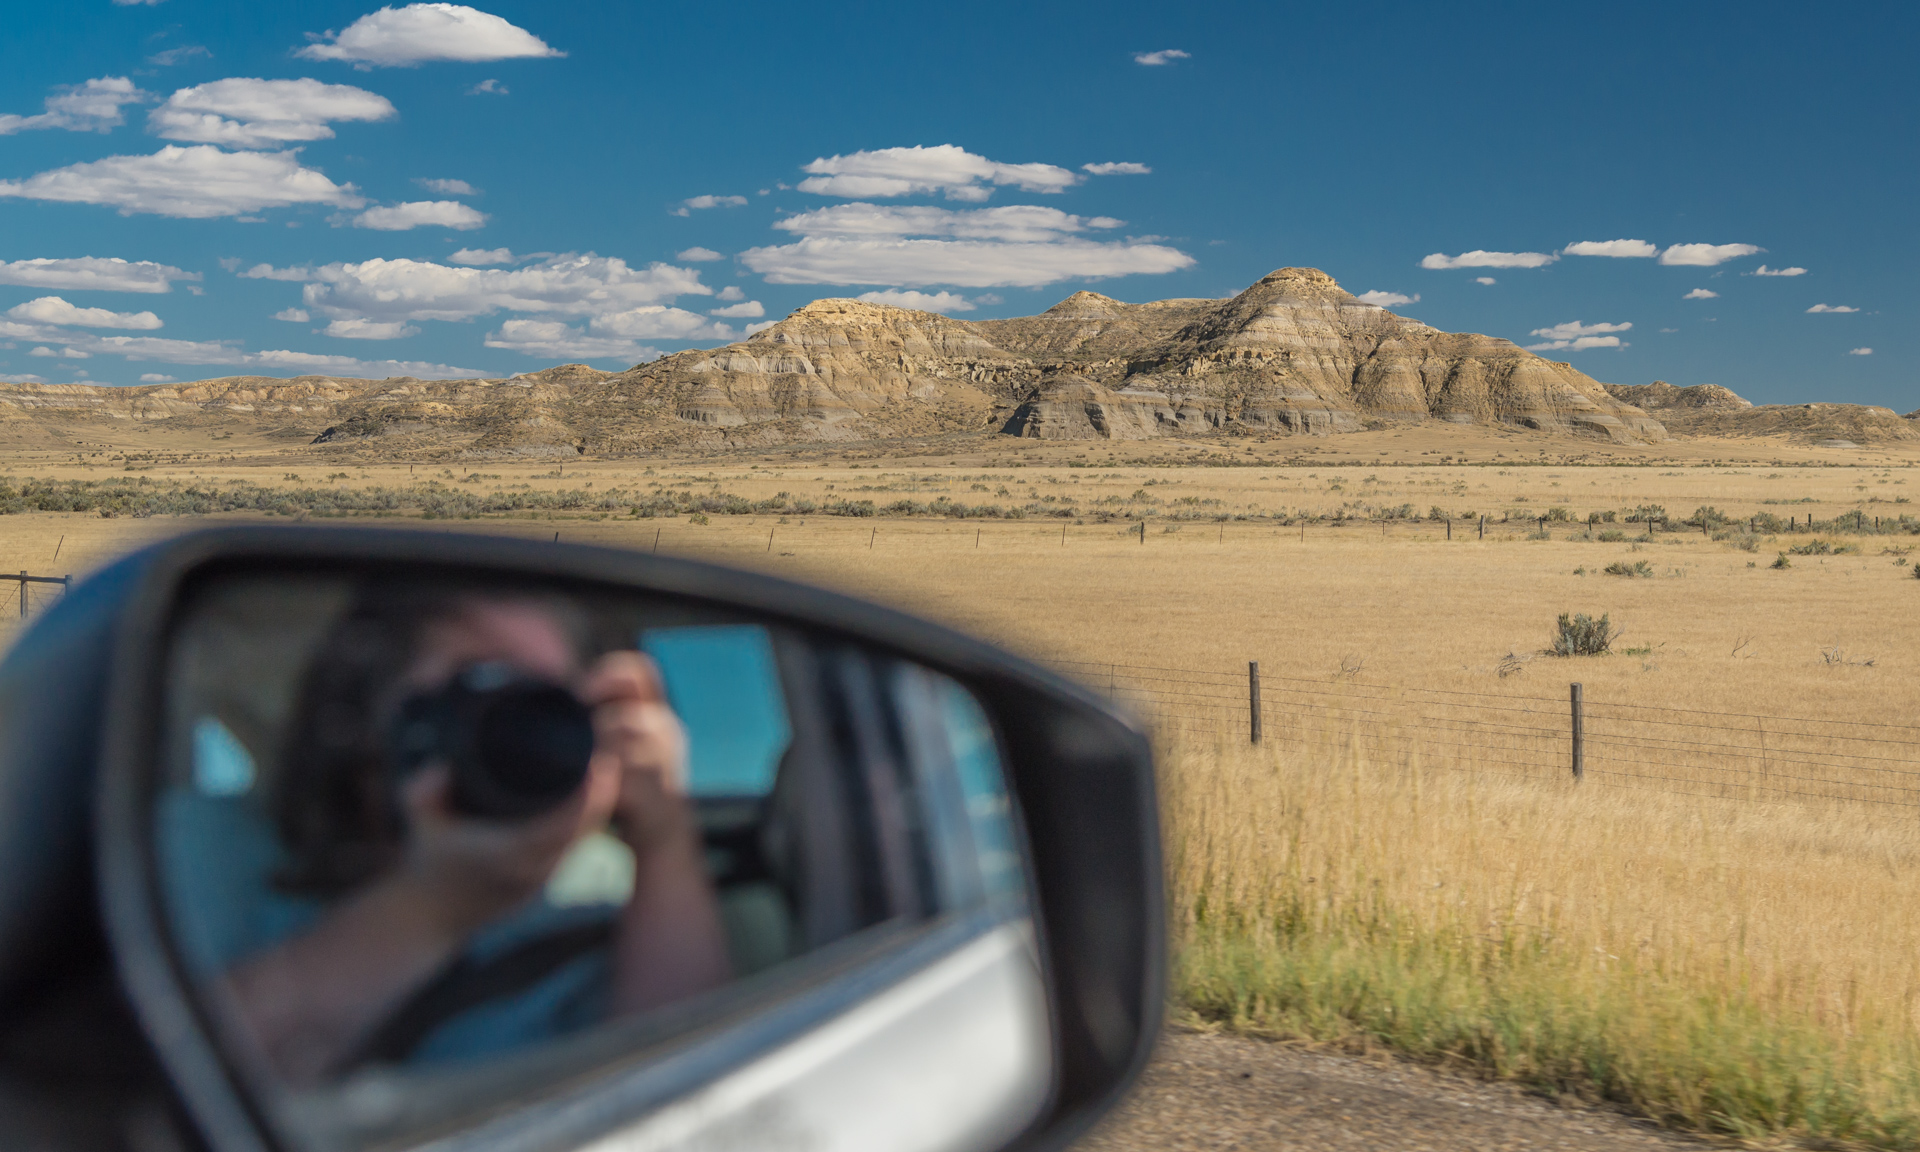 On the Road to Adventure - Digital (Selfie) - Cindy Carlsson